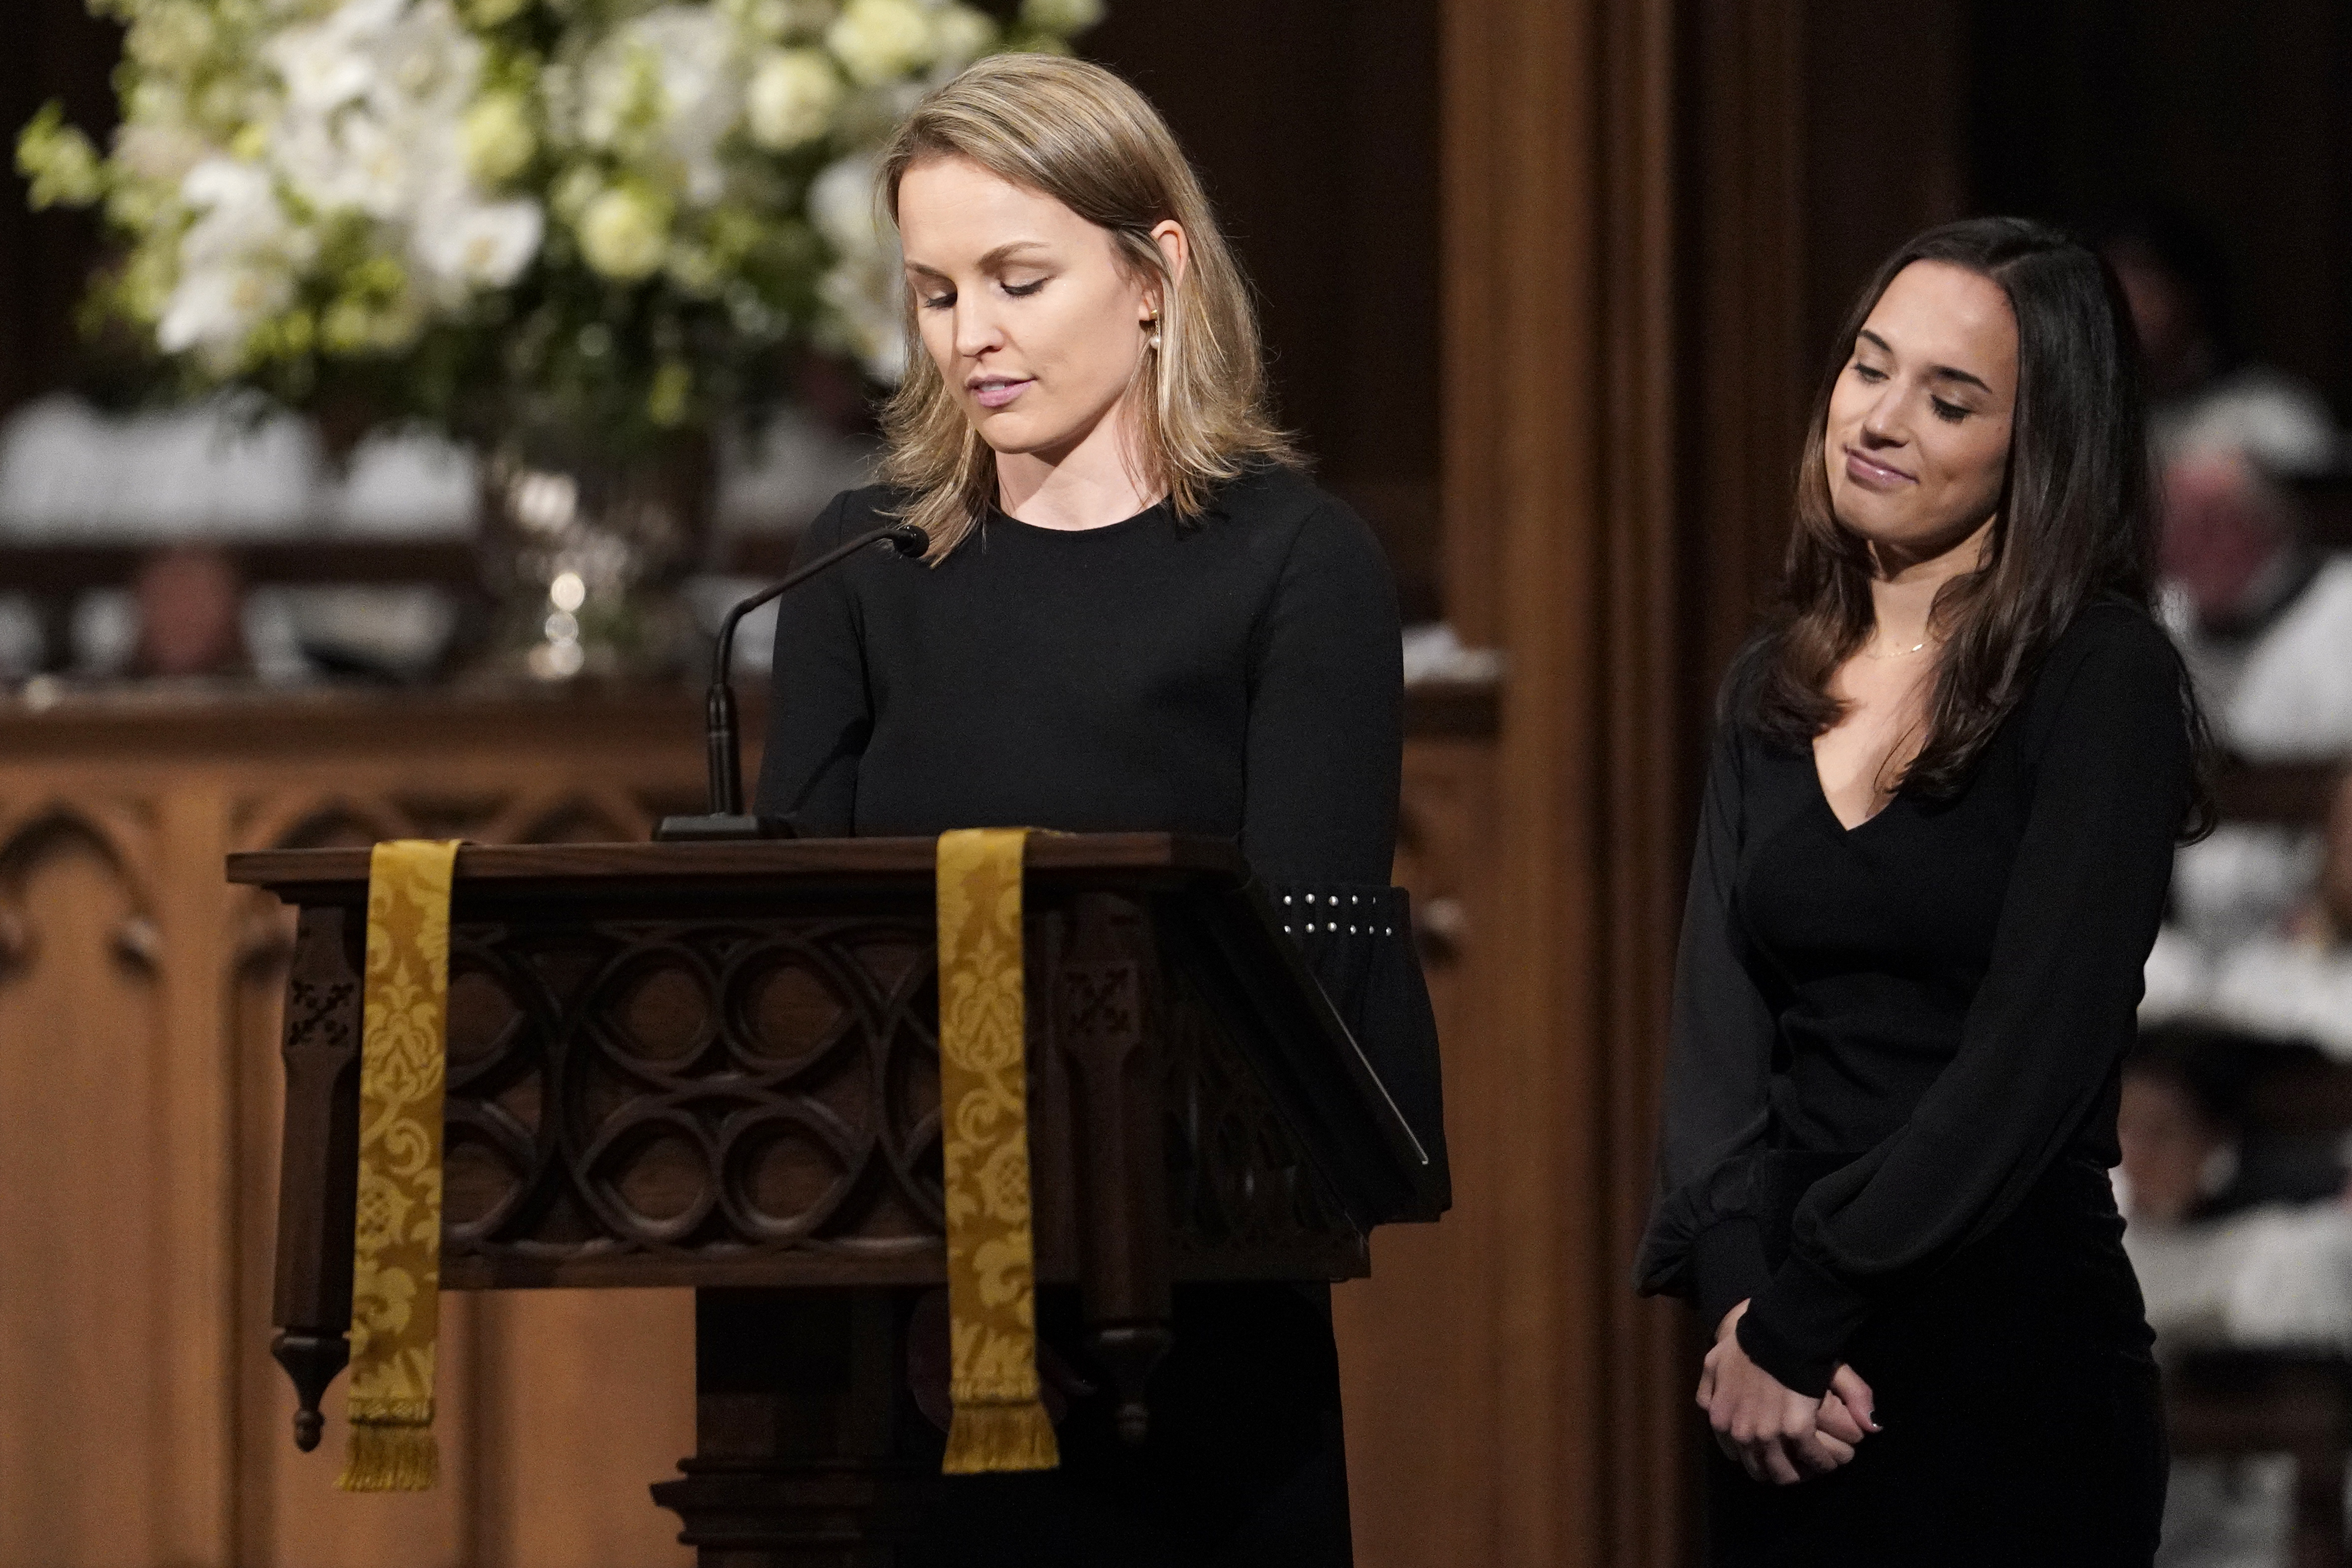 Granddaughters Nancy Ellis LeBlond Sosa, left, and Georgia Grace Koch read scripture during a funeral service for former President George H.W. Bush at St. Martin's Episcopal Church Thursday, Dec. 6, 2018, in Houston.(AP Photo/David J. Phillip, Pool)